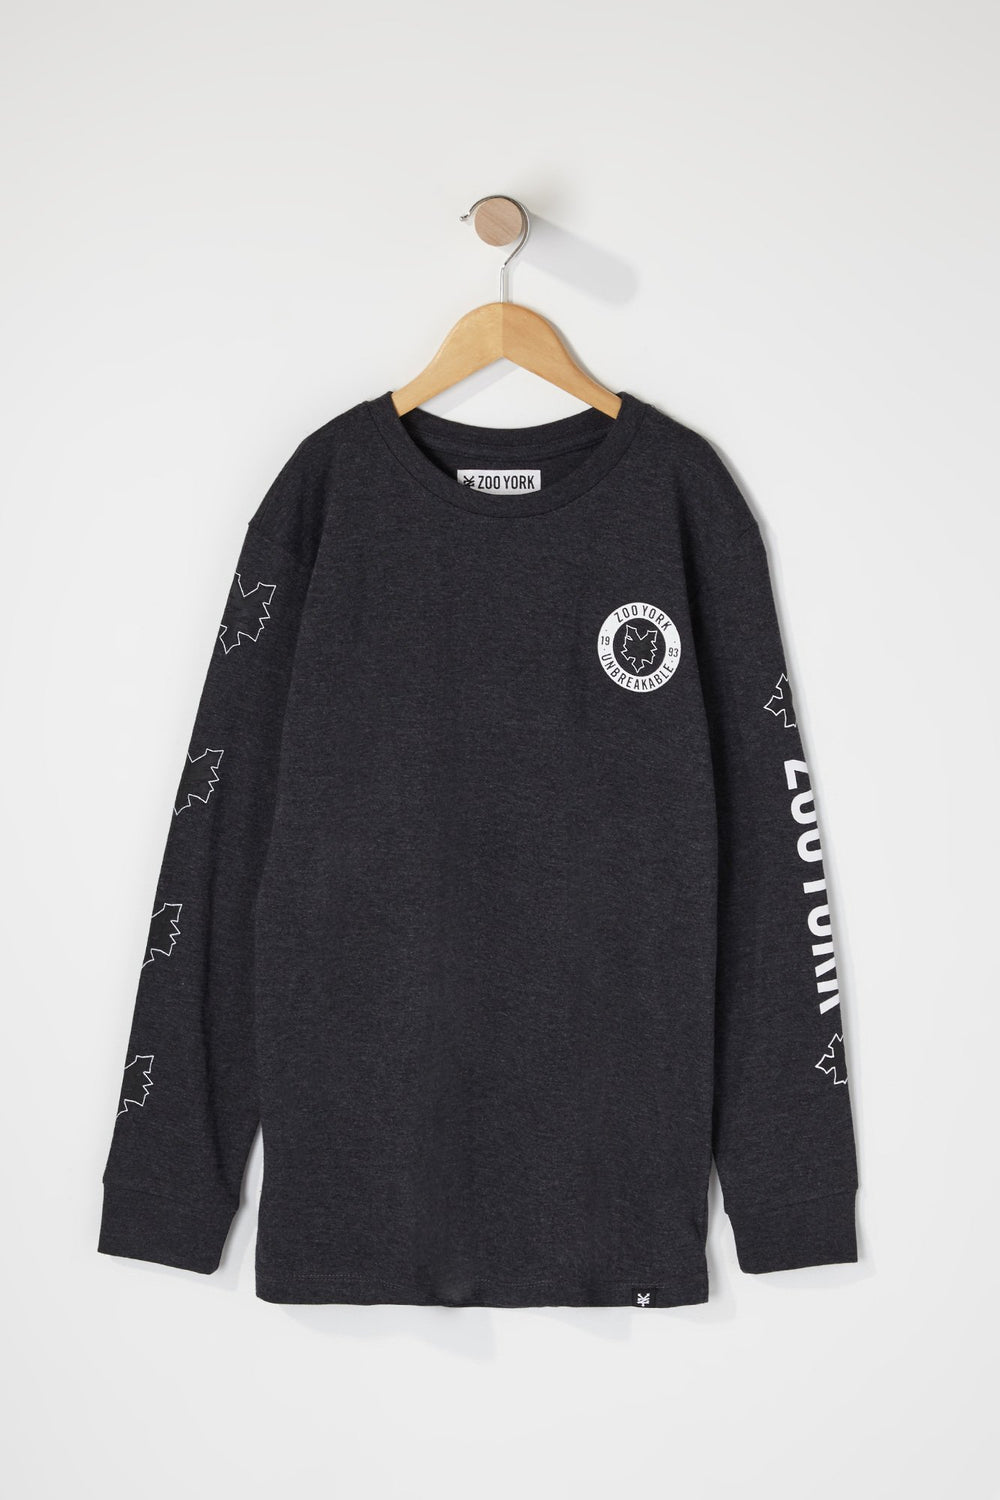 Zoo York Boys Classic Logo Long Sleeve Shirt Charcoal